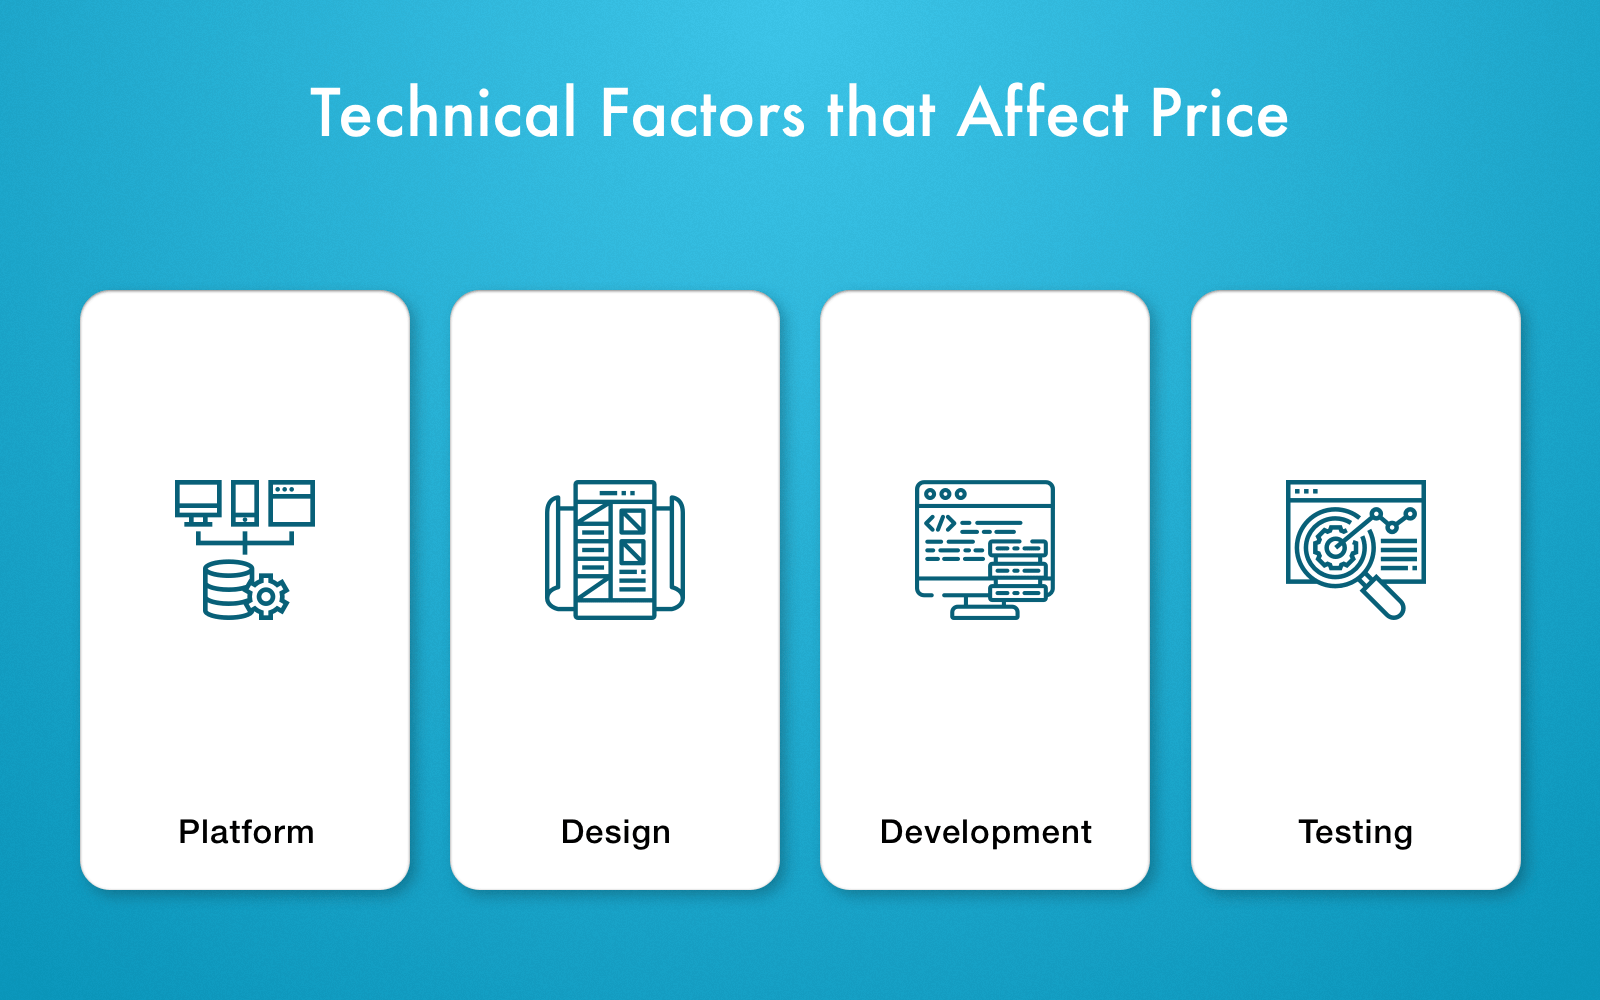 Technical factors that affect the price